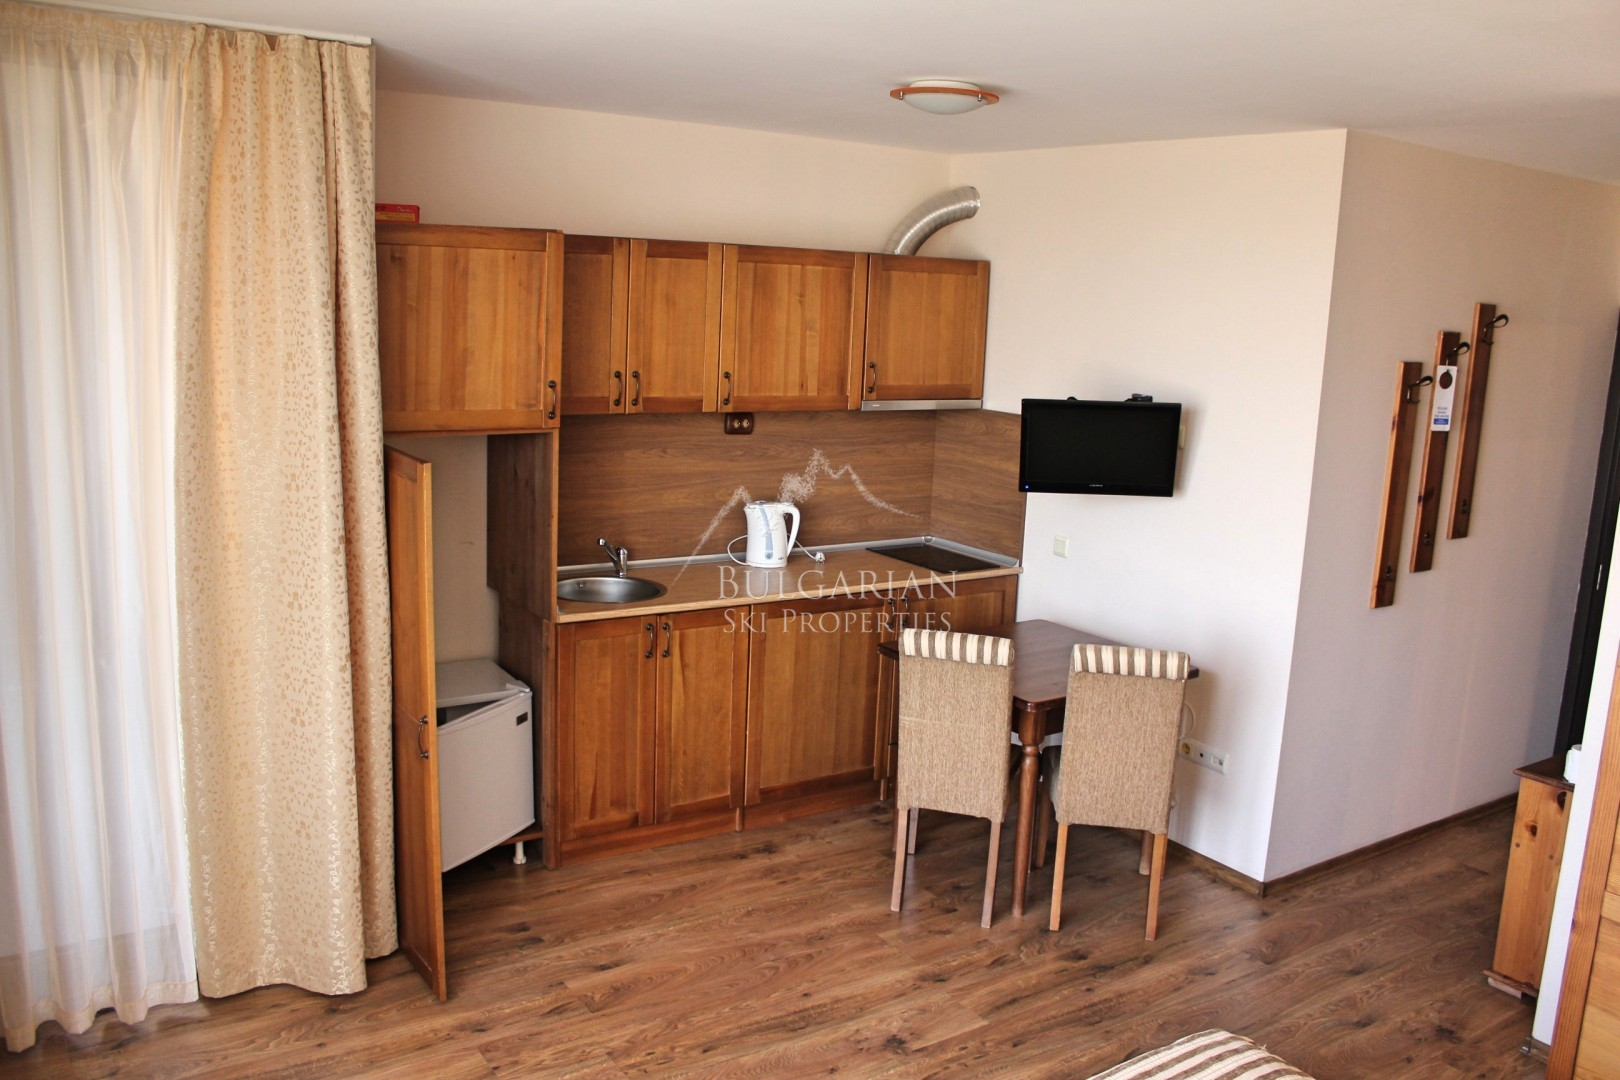 Cornelia Hotel, Bansko: stylishly furnished studio for sale